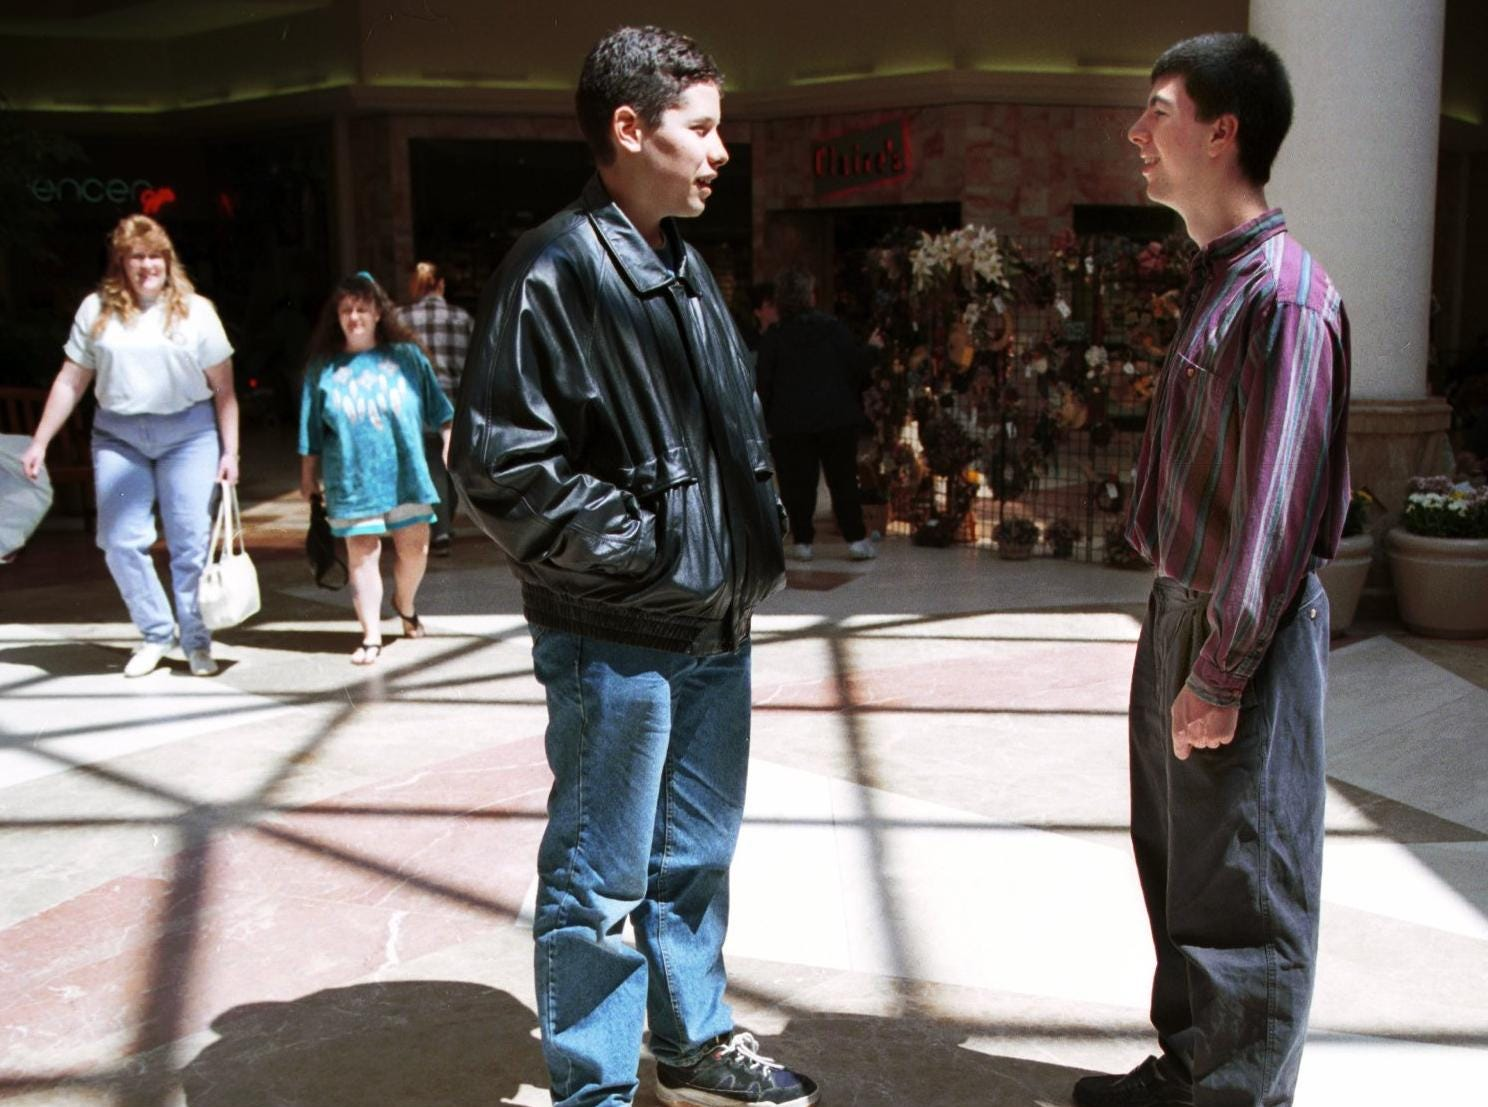 Anthony Holmes,17, (left) and Kyle Hyman,17, (right) talk in center court of the Oakdale Mall in April of 1999.